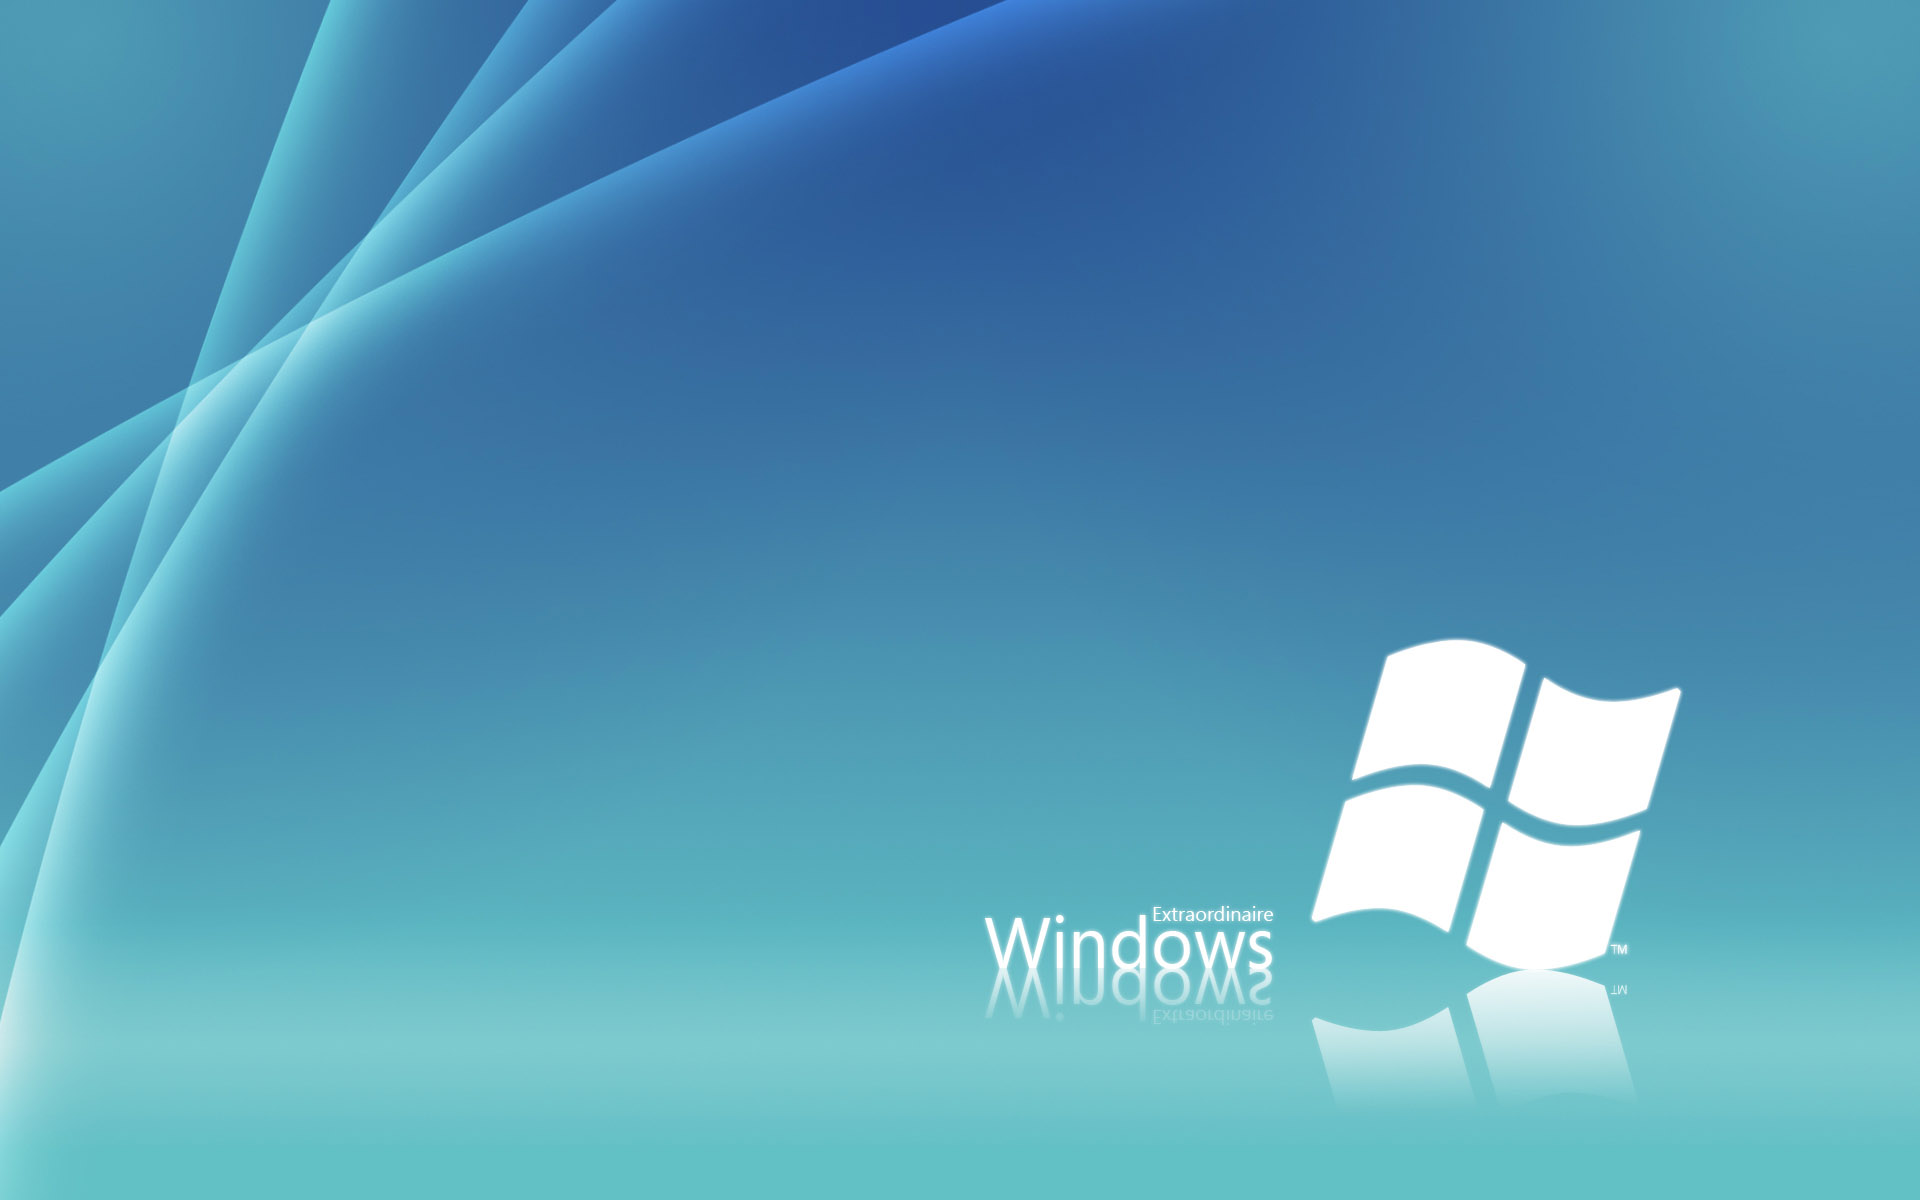 Windows Desktop Wallpaper 10448